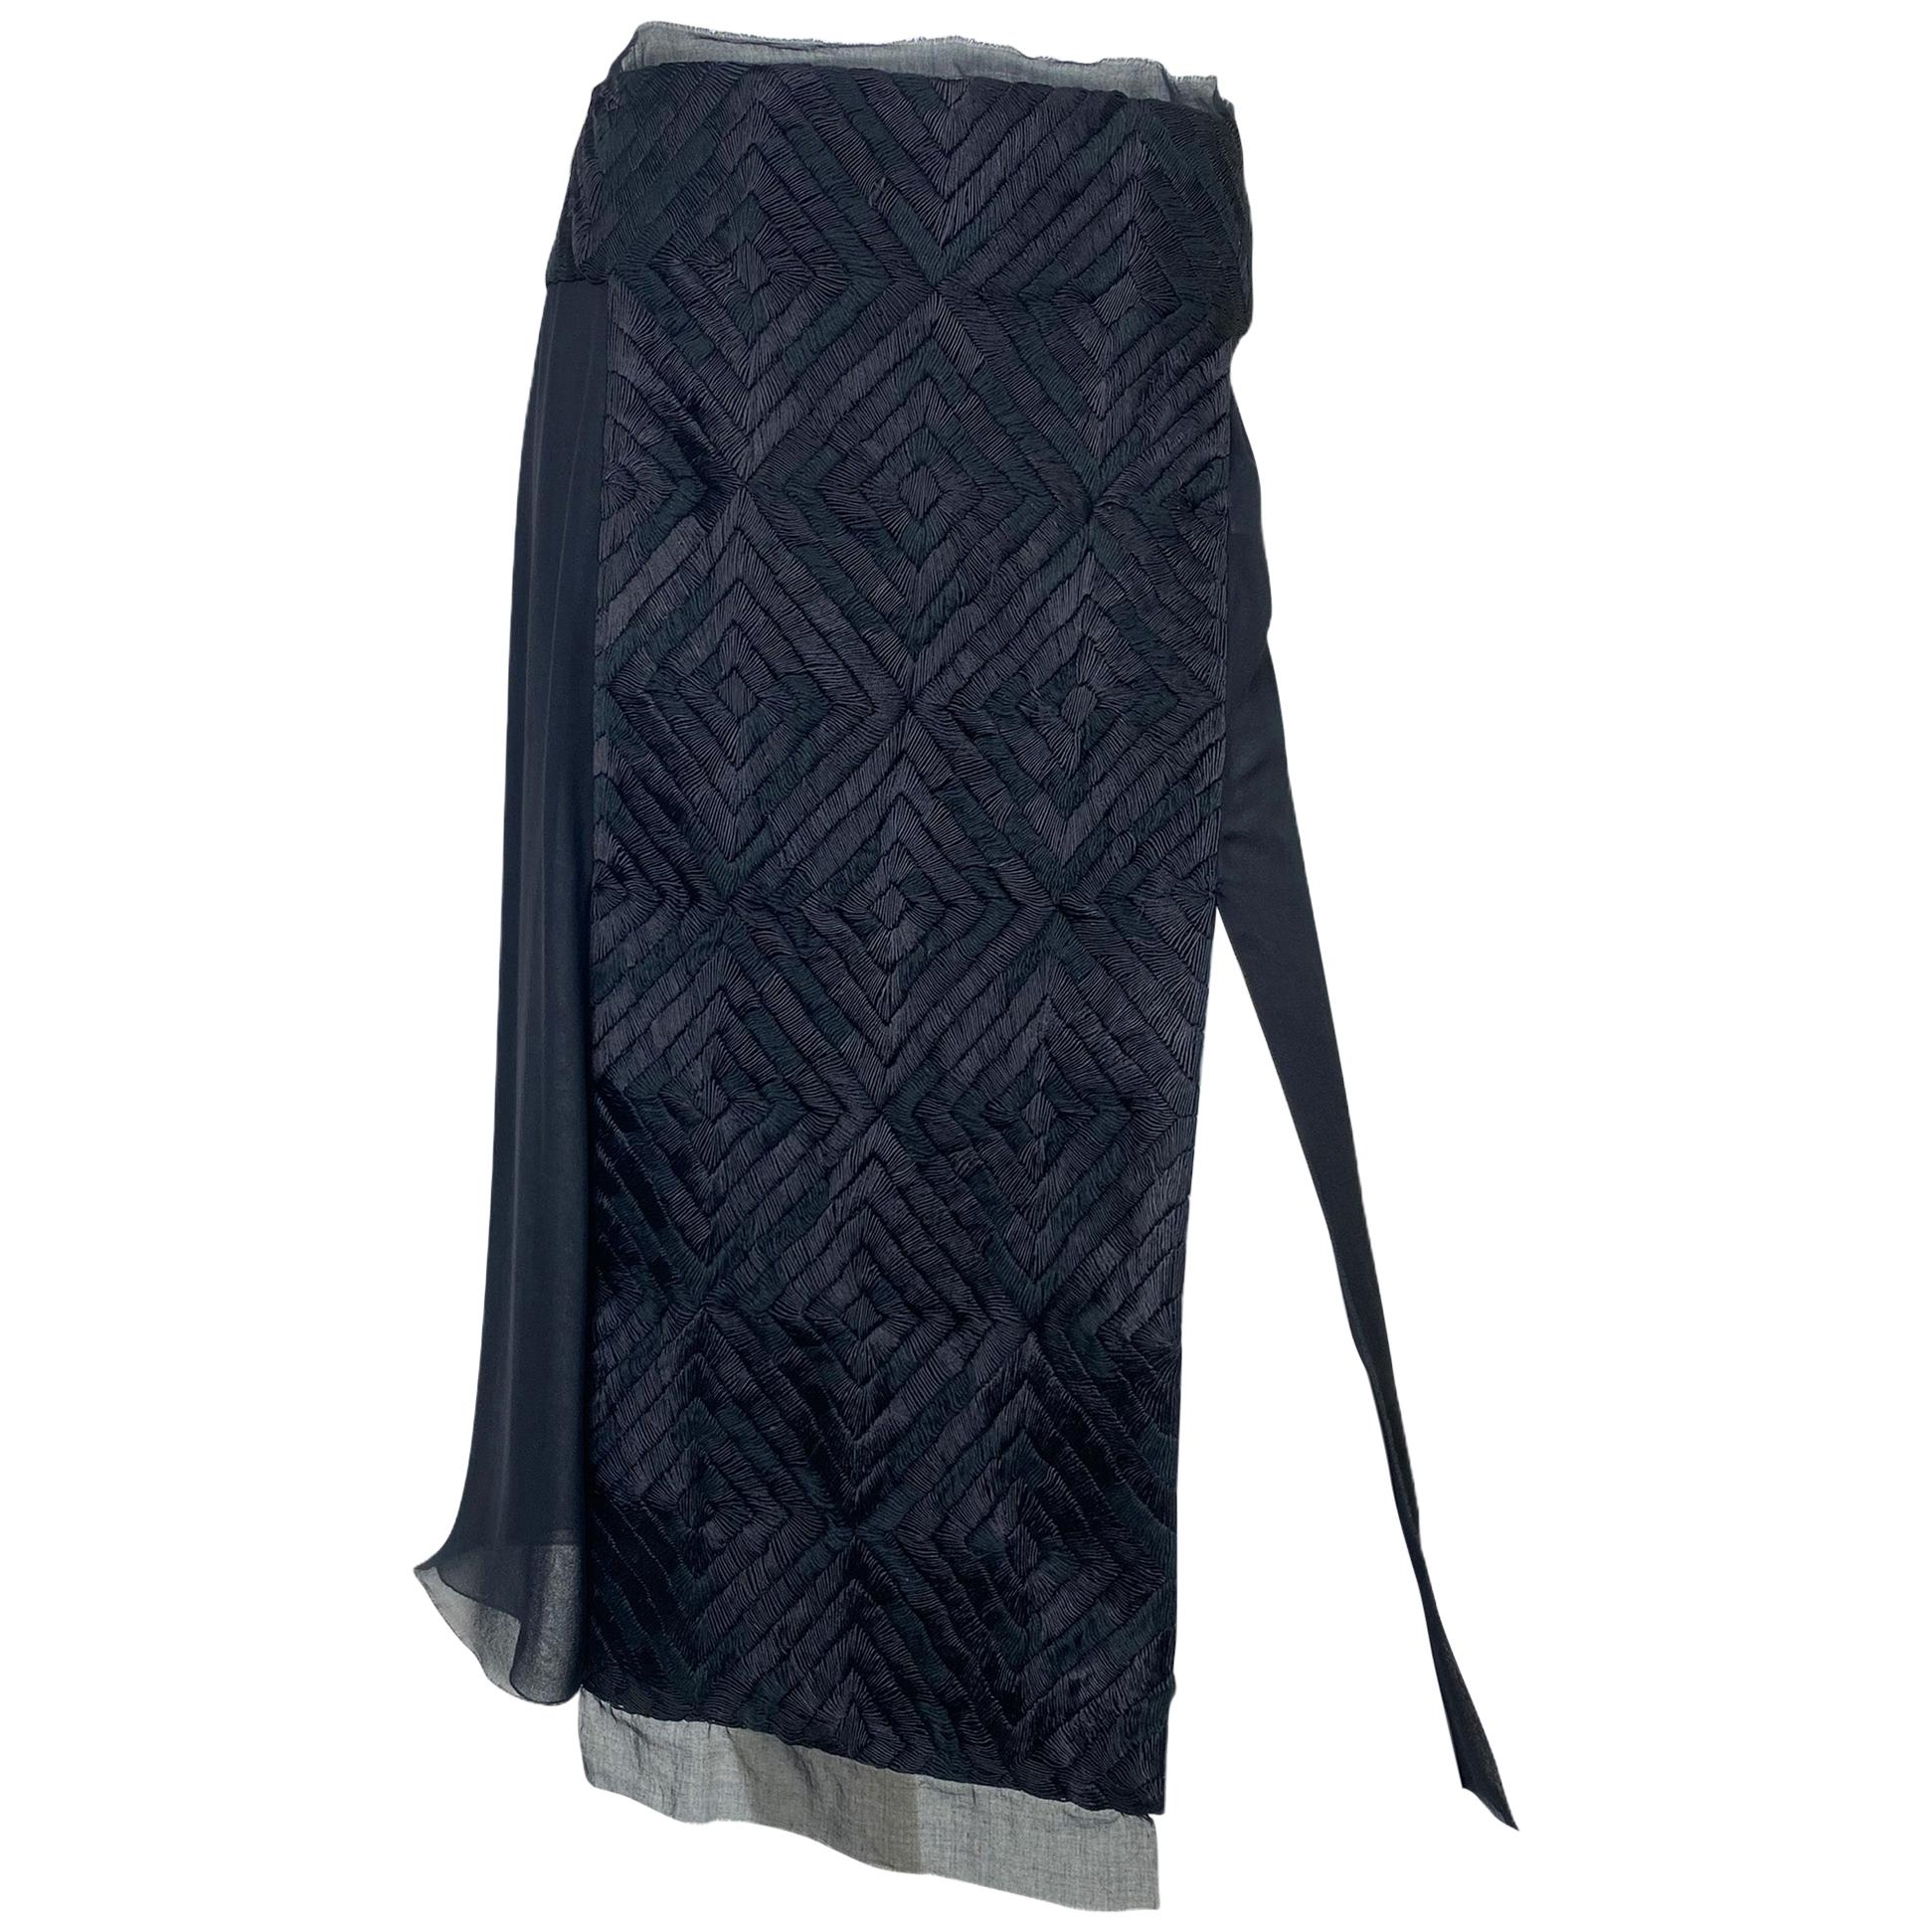 F/W 2002 Tom Ford for Gucci embroidered silk skirt